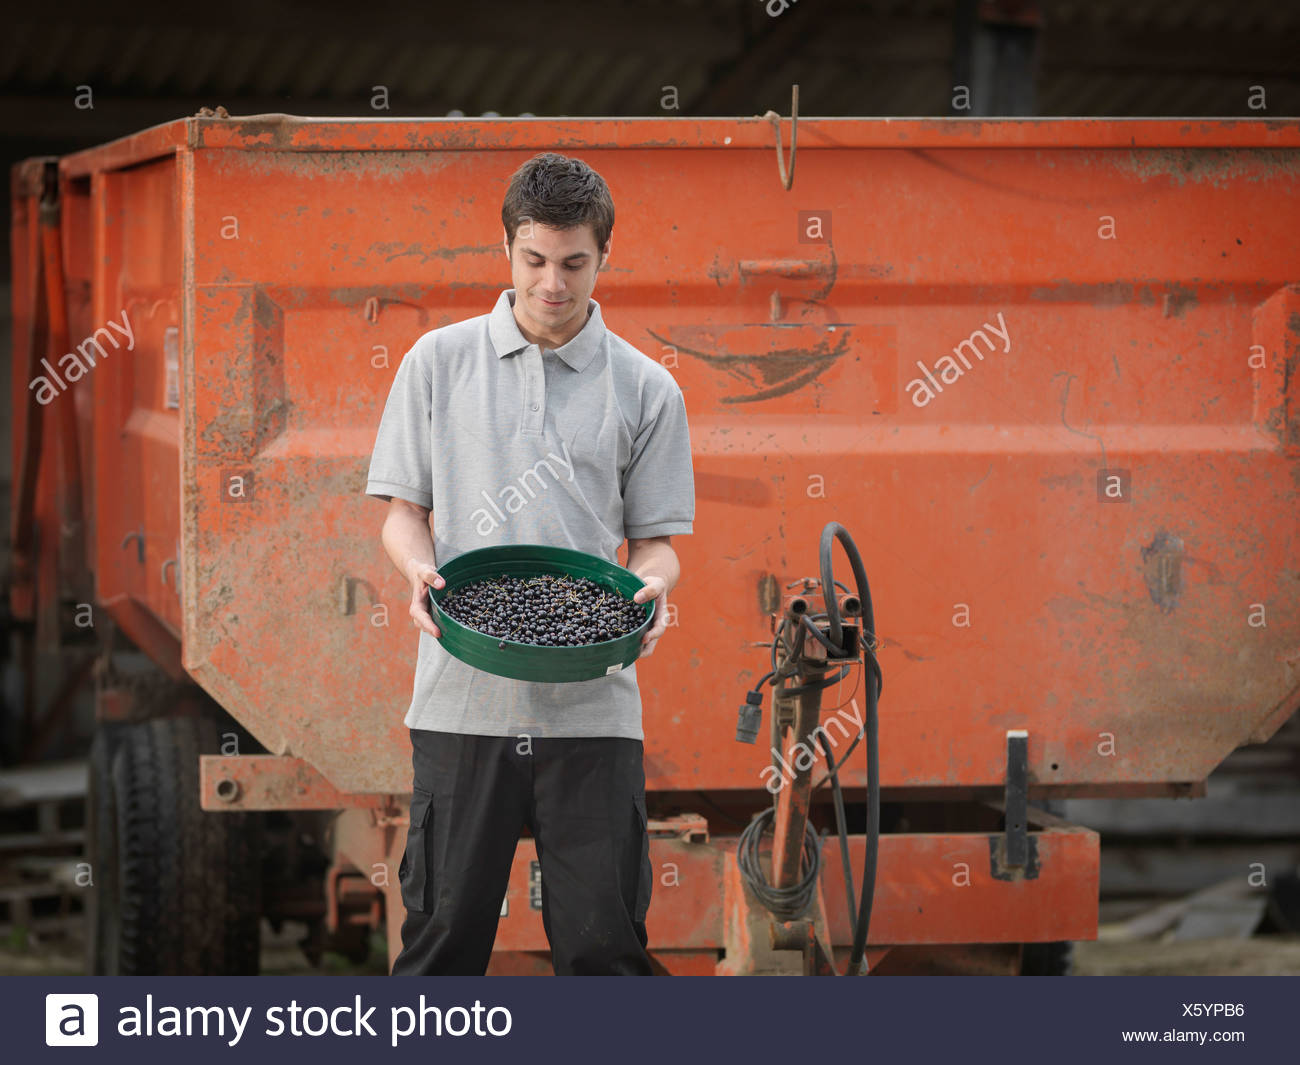 Man And Tray Of Harvested Black Currants - Stock Image